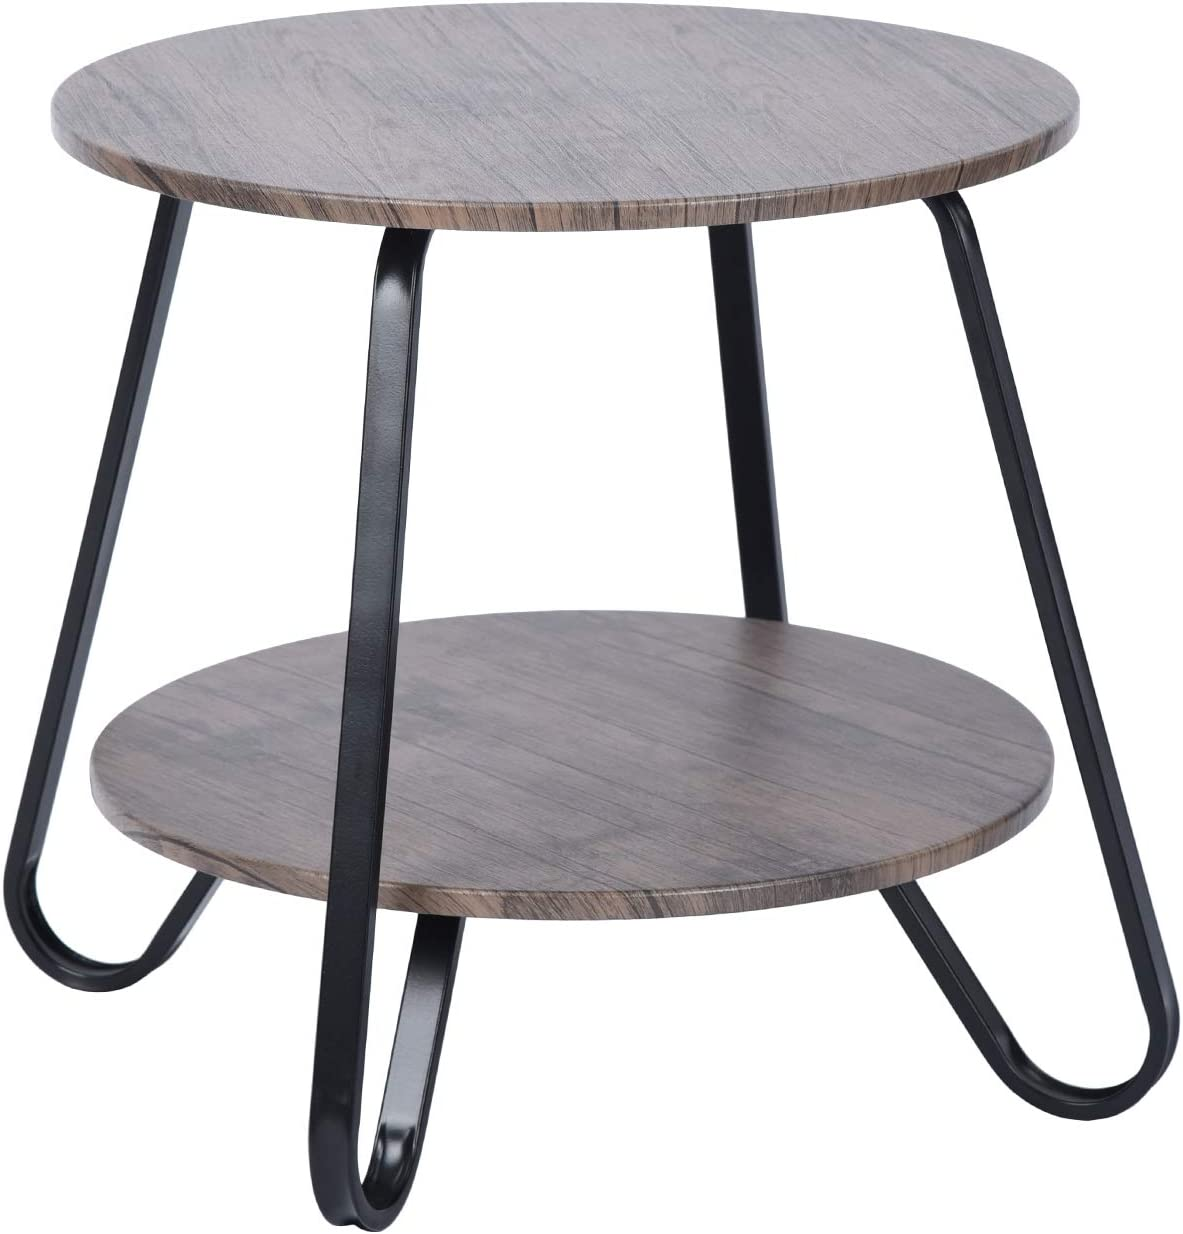 Small Coffee Table Round Mid Century Vintage Steel Frame Side Table End Table fo